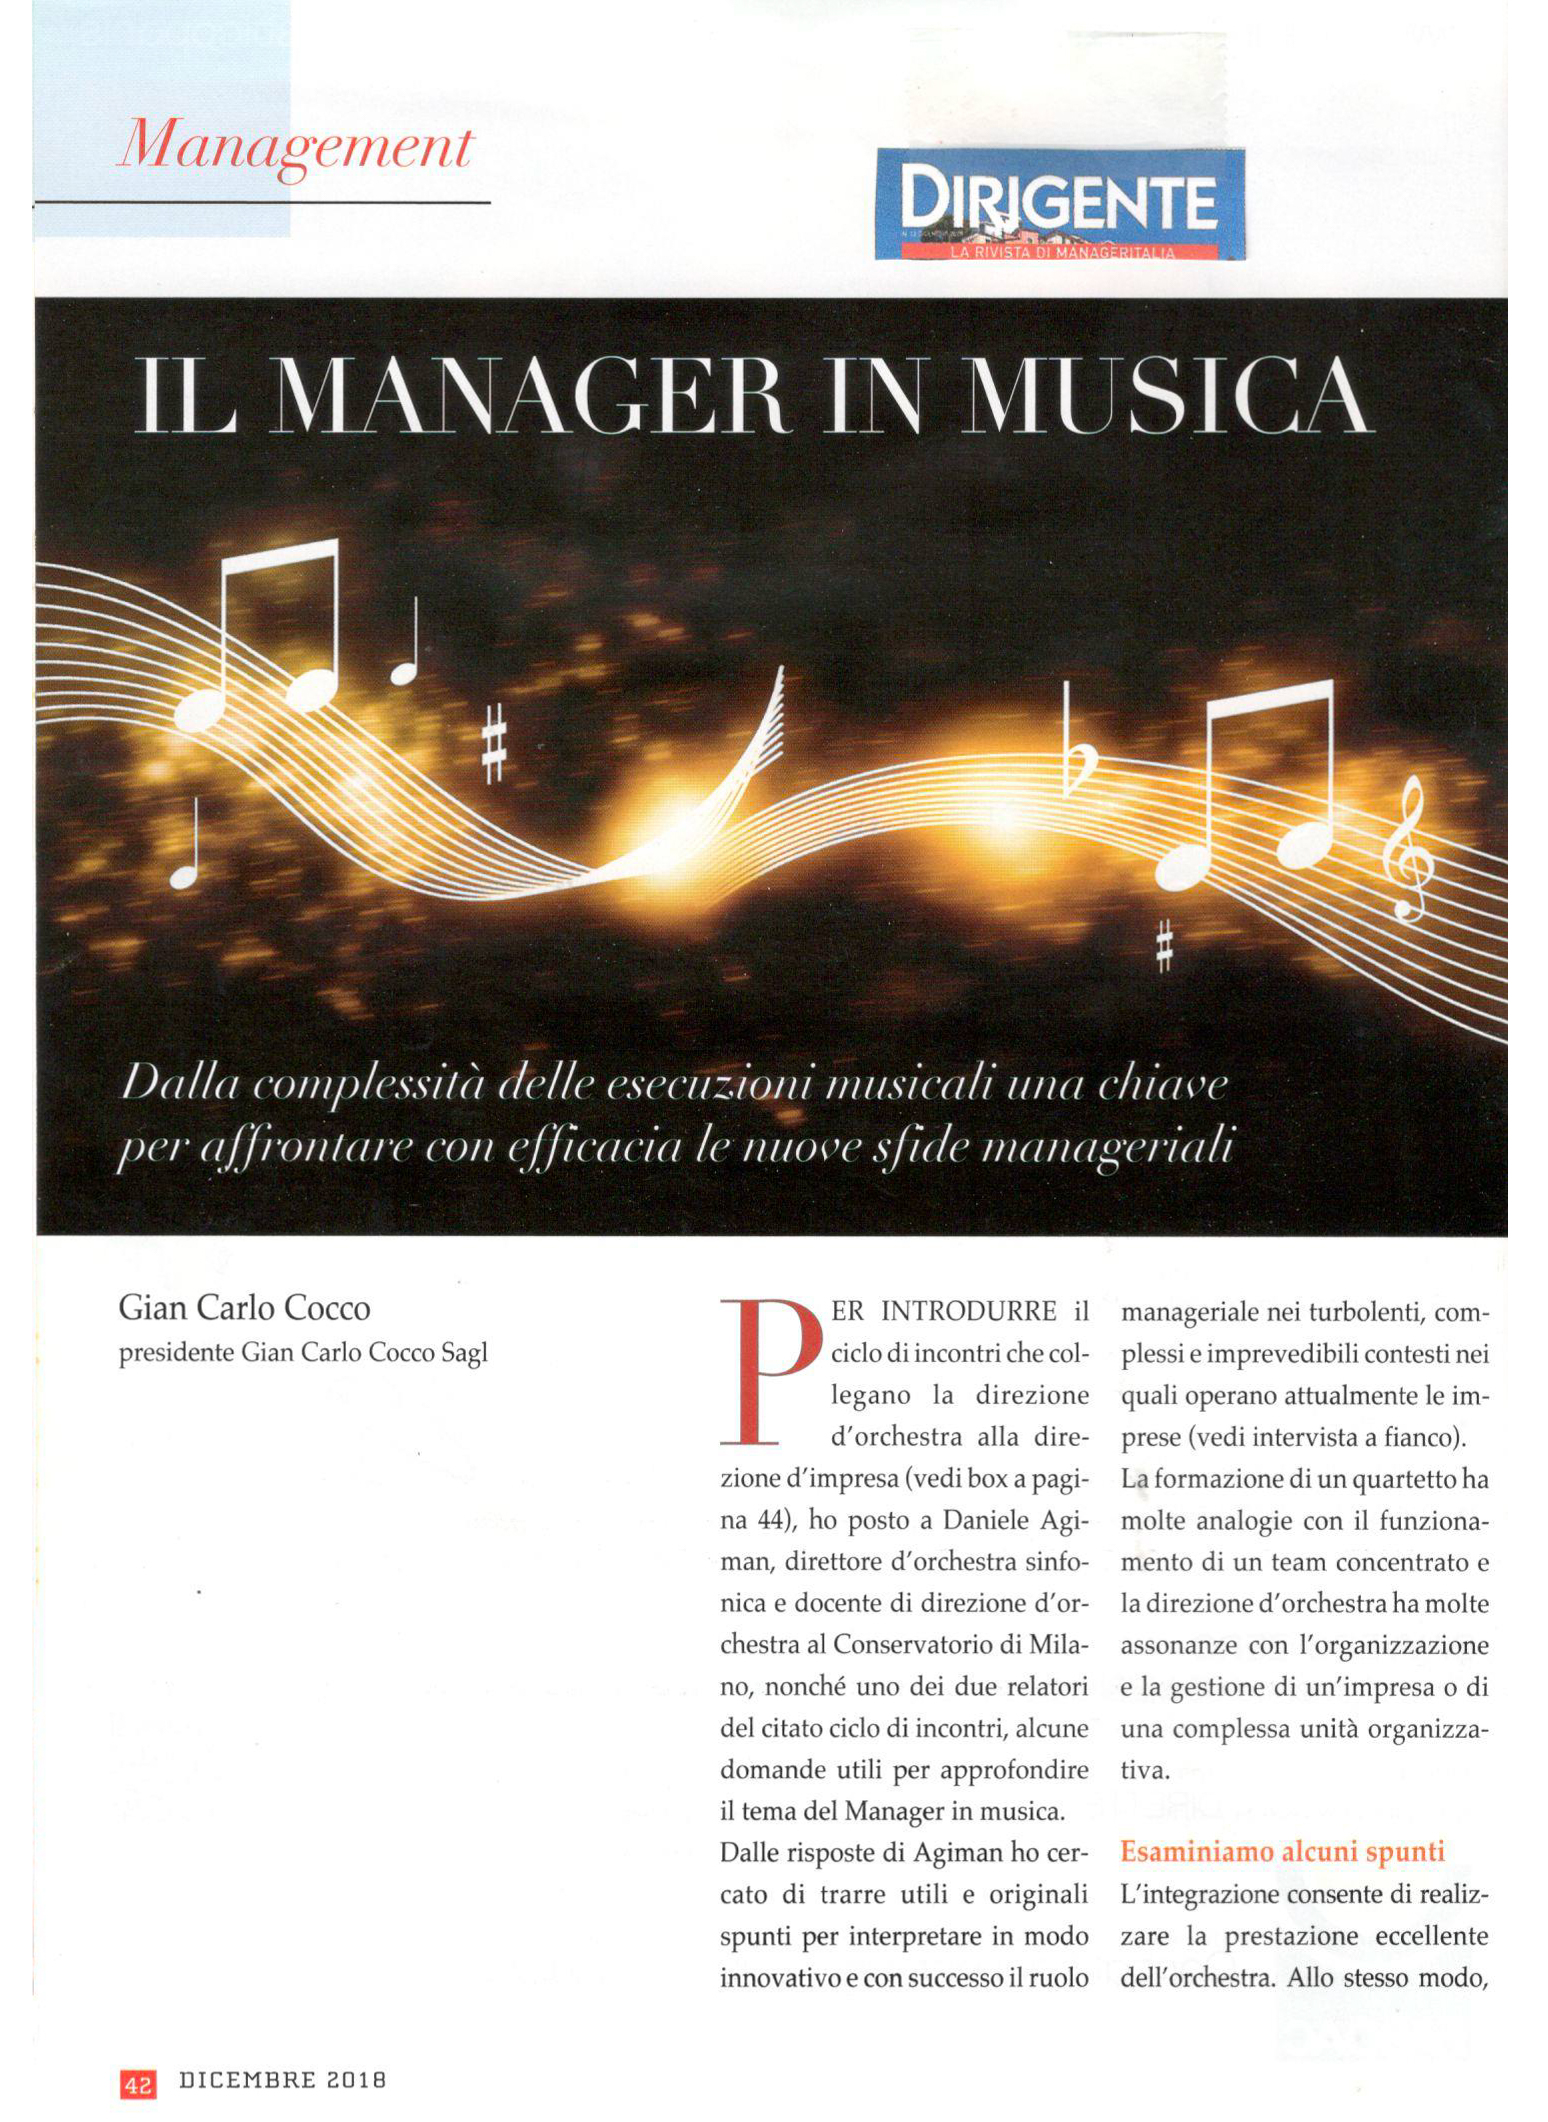 Il Manager in musica